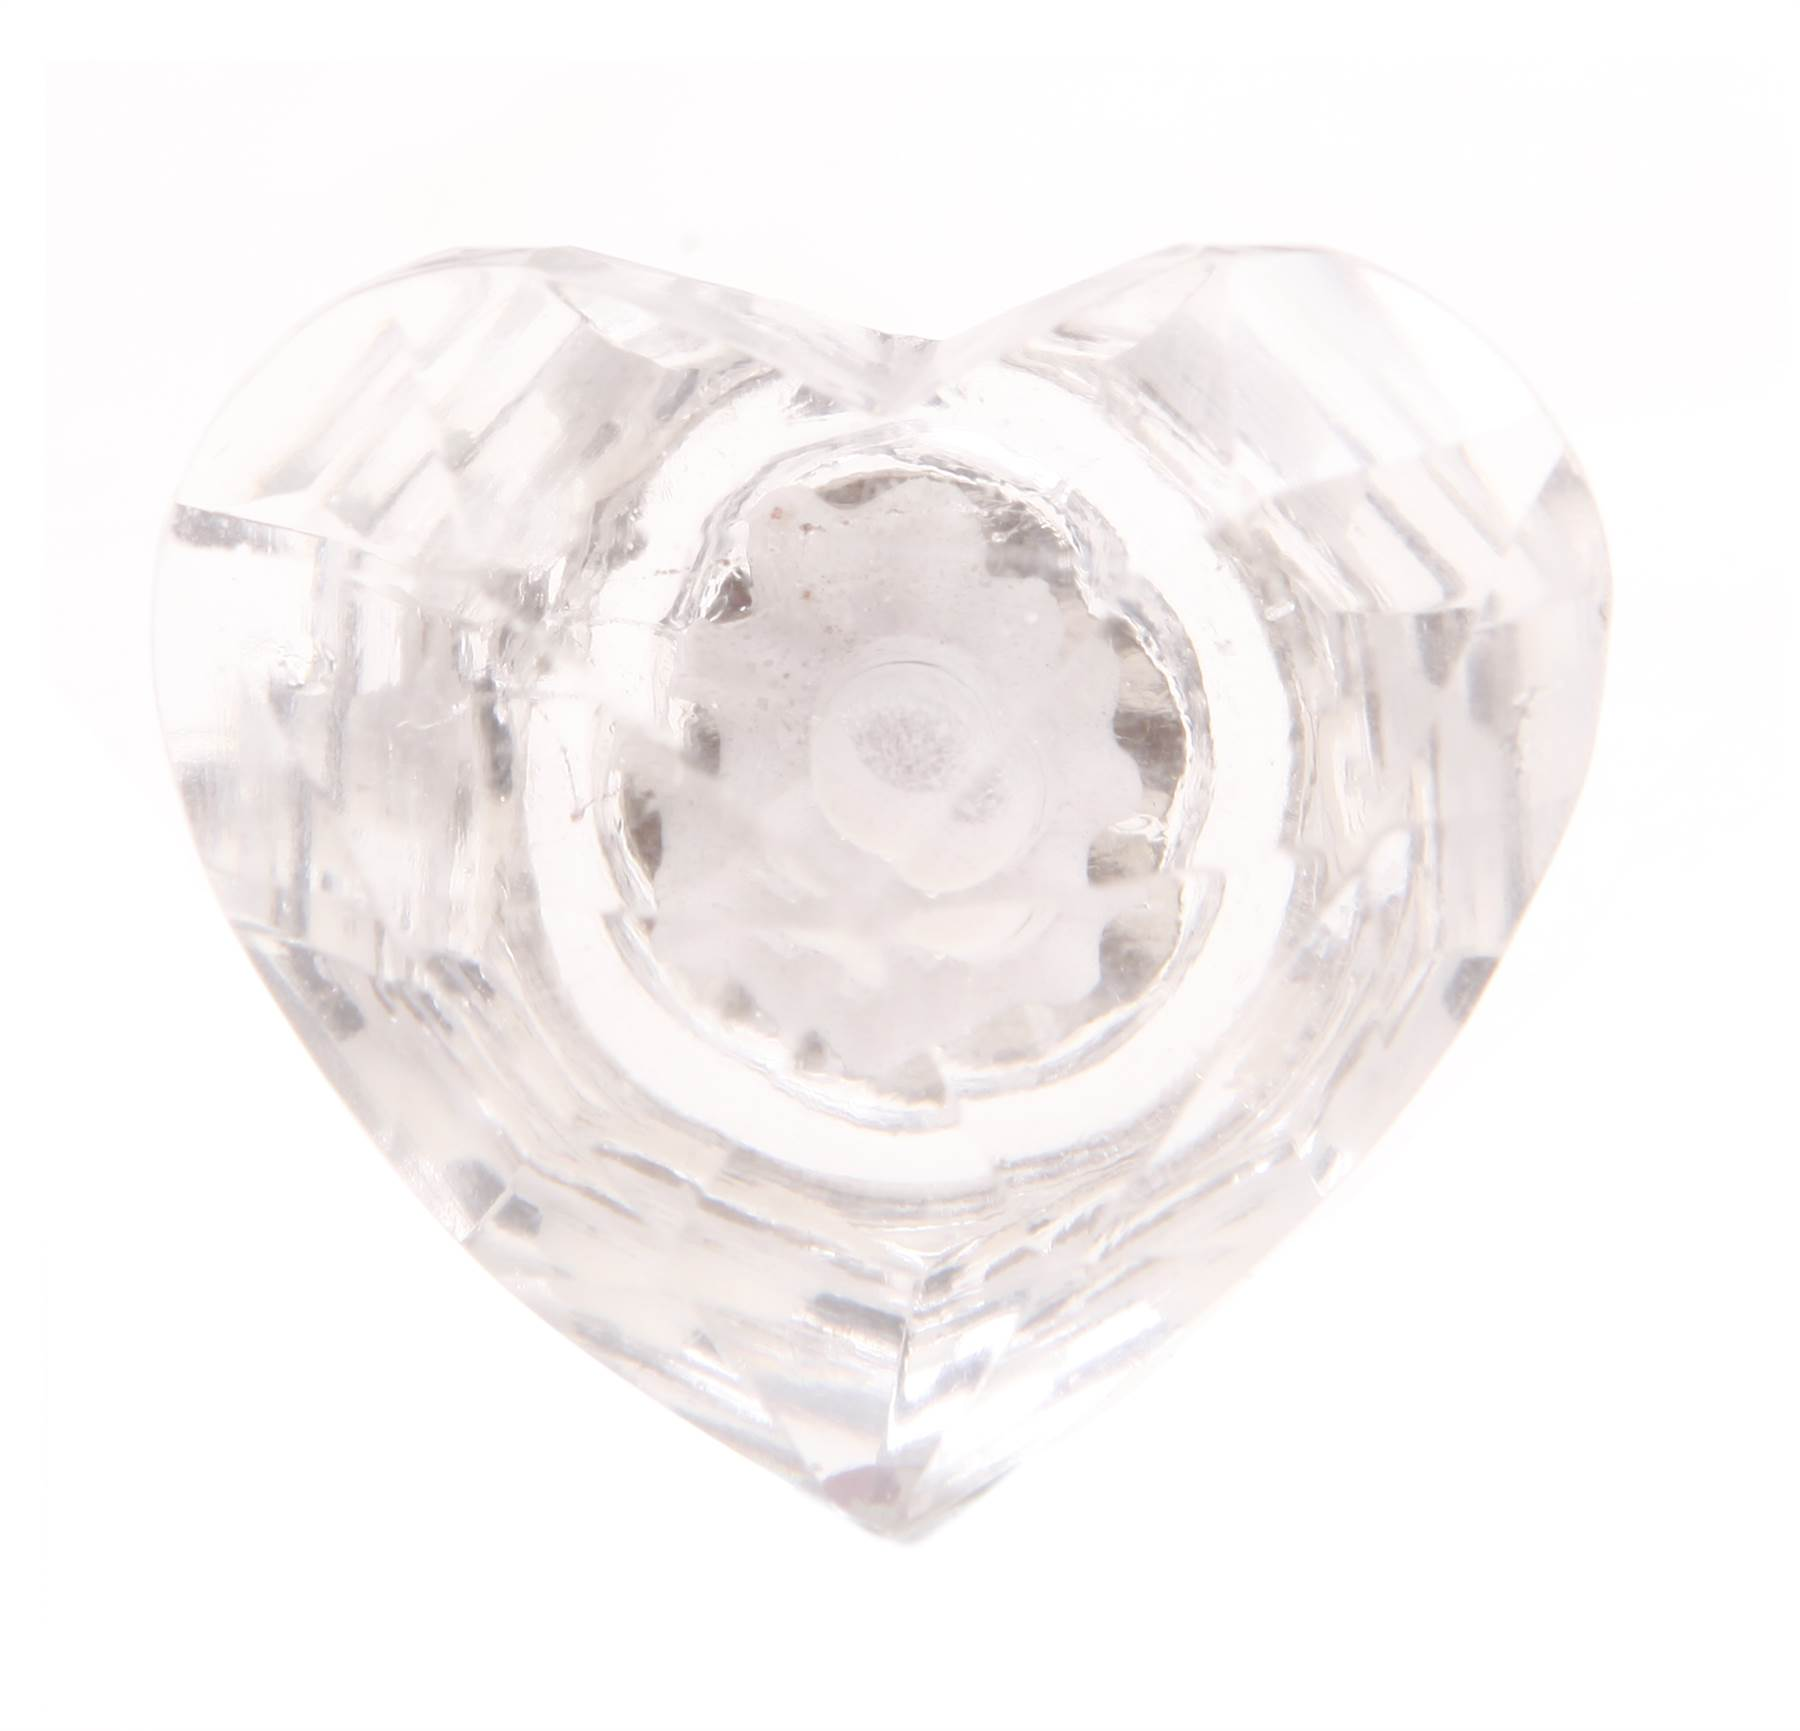 Vintage cut glass heart door knobs stunning furniture drawer pulls handles ebay Glass furniture pulls